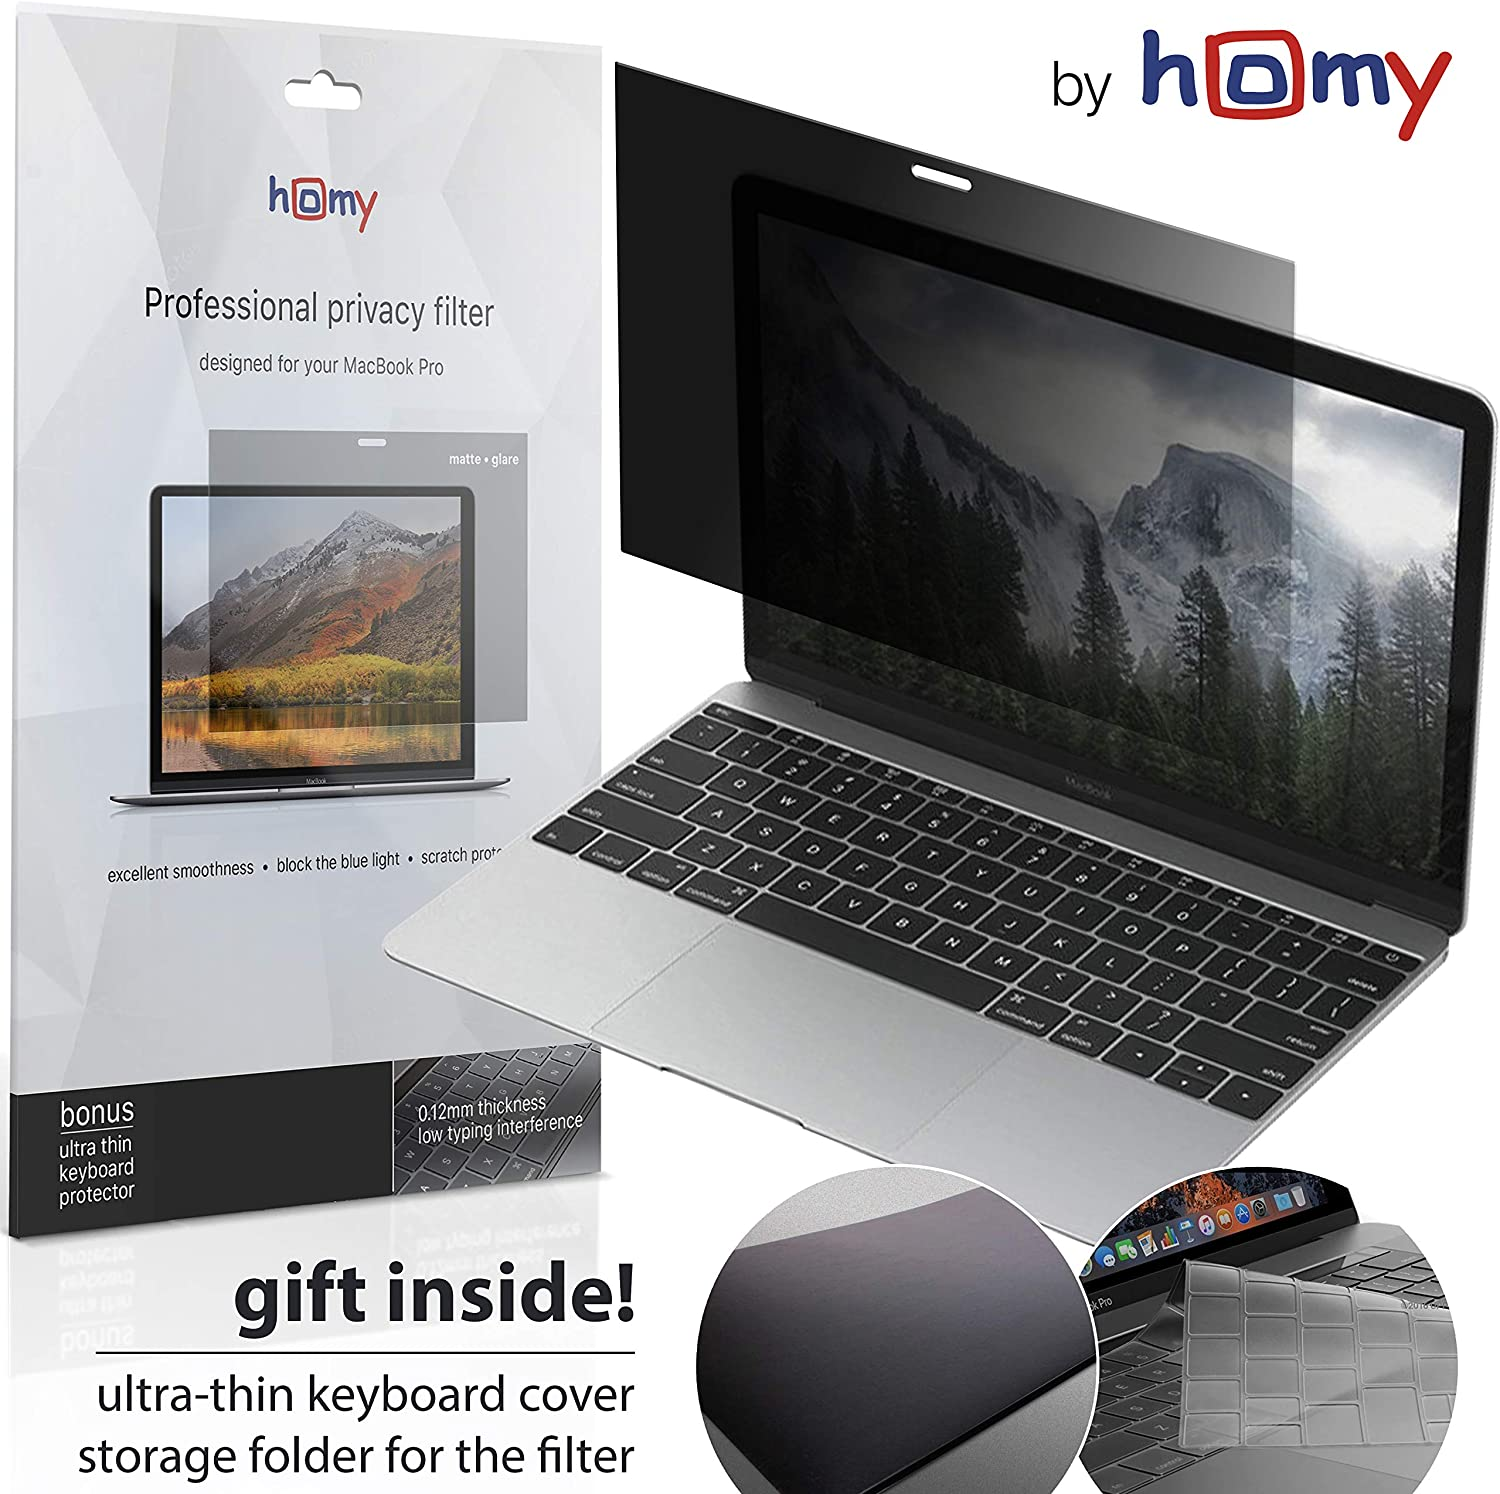 Homy Privacy Screen for MacBook 12 inch, Matte Filter Protect Your Eyes Against Blue Light. Bonus: Keyboard Cover Ultra-Thin TPU and Folder Storage for Protector When Not in Use. Compatible A1534